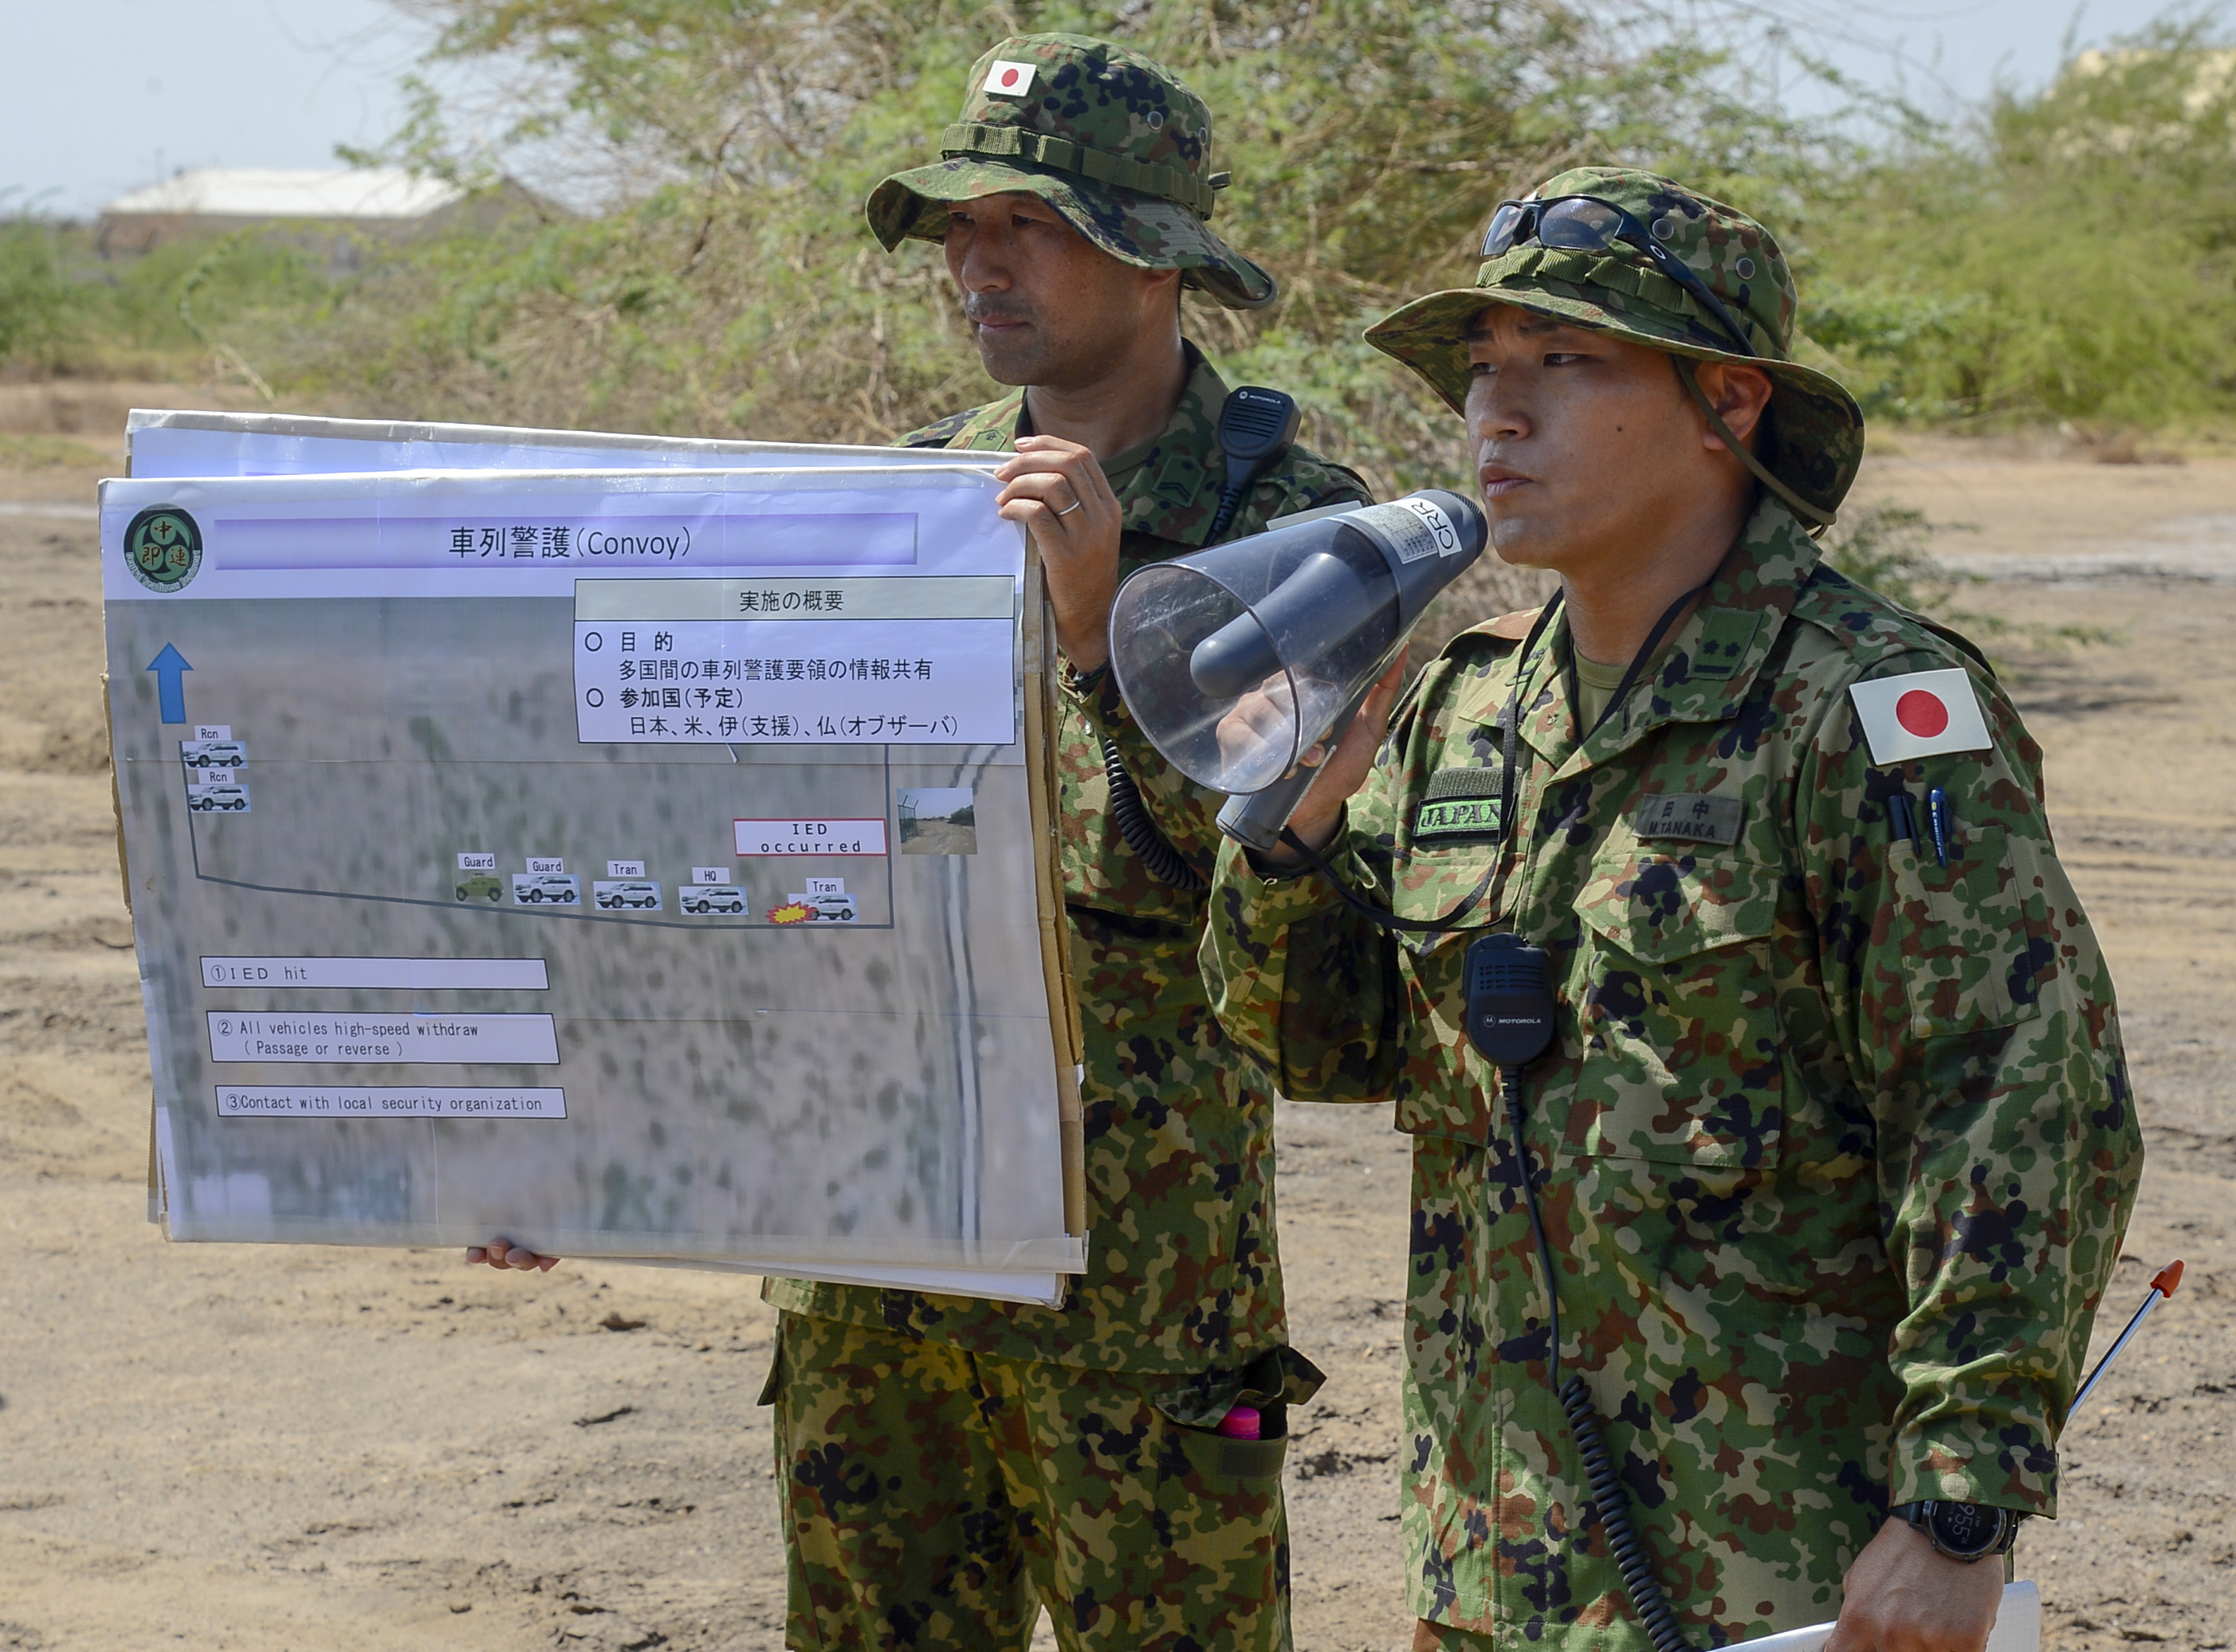 Japanese Self Defense Force 1st Lt. Masaki Tanaka presents a brief on Japanese convoy evacuation operations during a joint coalition exercise at Camp Lemonnier, Djibouti, Sep. 5, 2018. The joint exercise allowed coalition forces from Italy, Japan, France, and Djibouti to learn alongside the U.S. Army and exchane best practices. (U.S. Navy Photo by Mass Communication Specialist 2nd Class Timothy M. Ahearn)